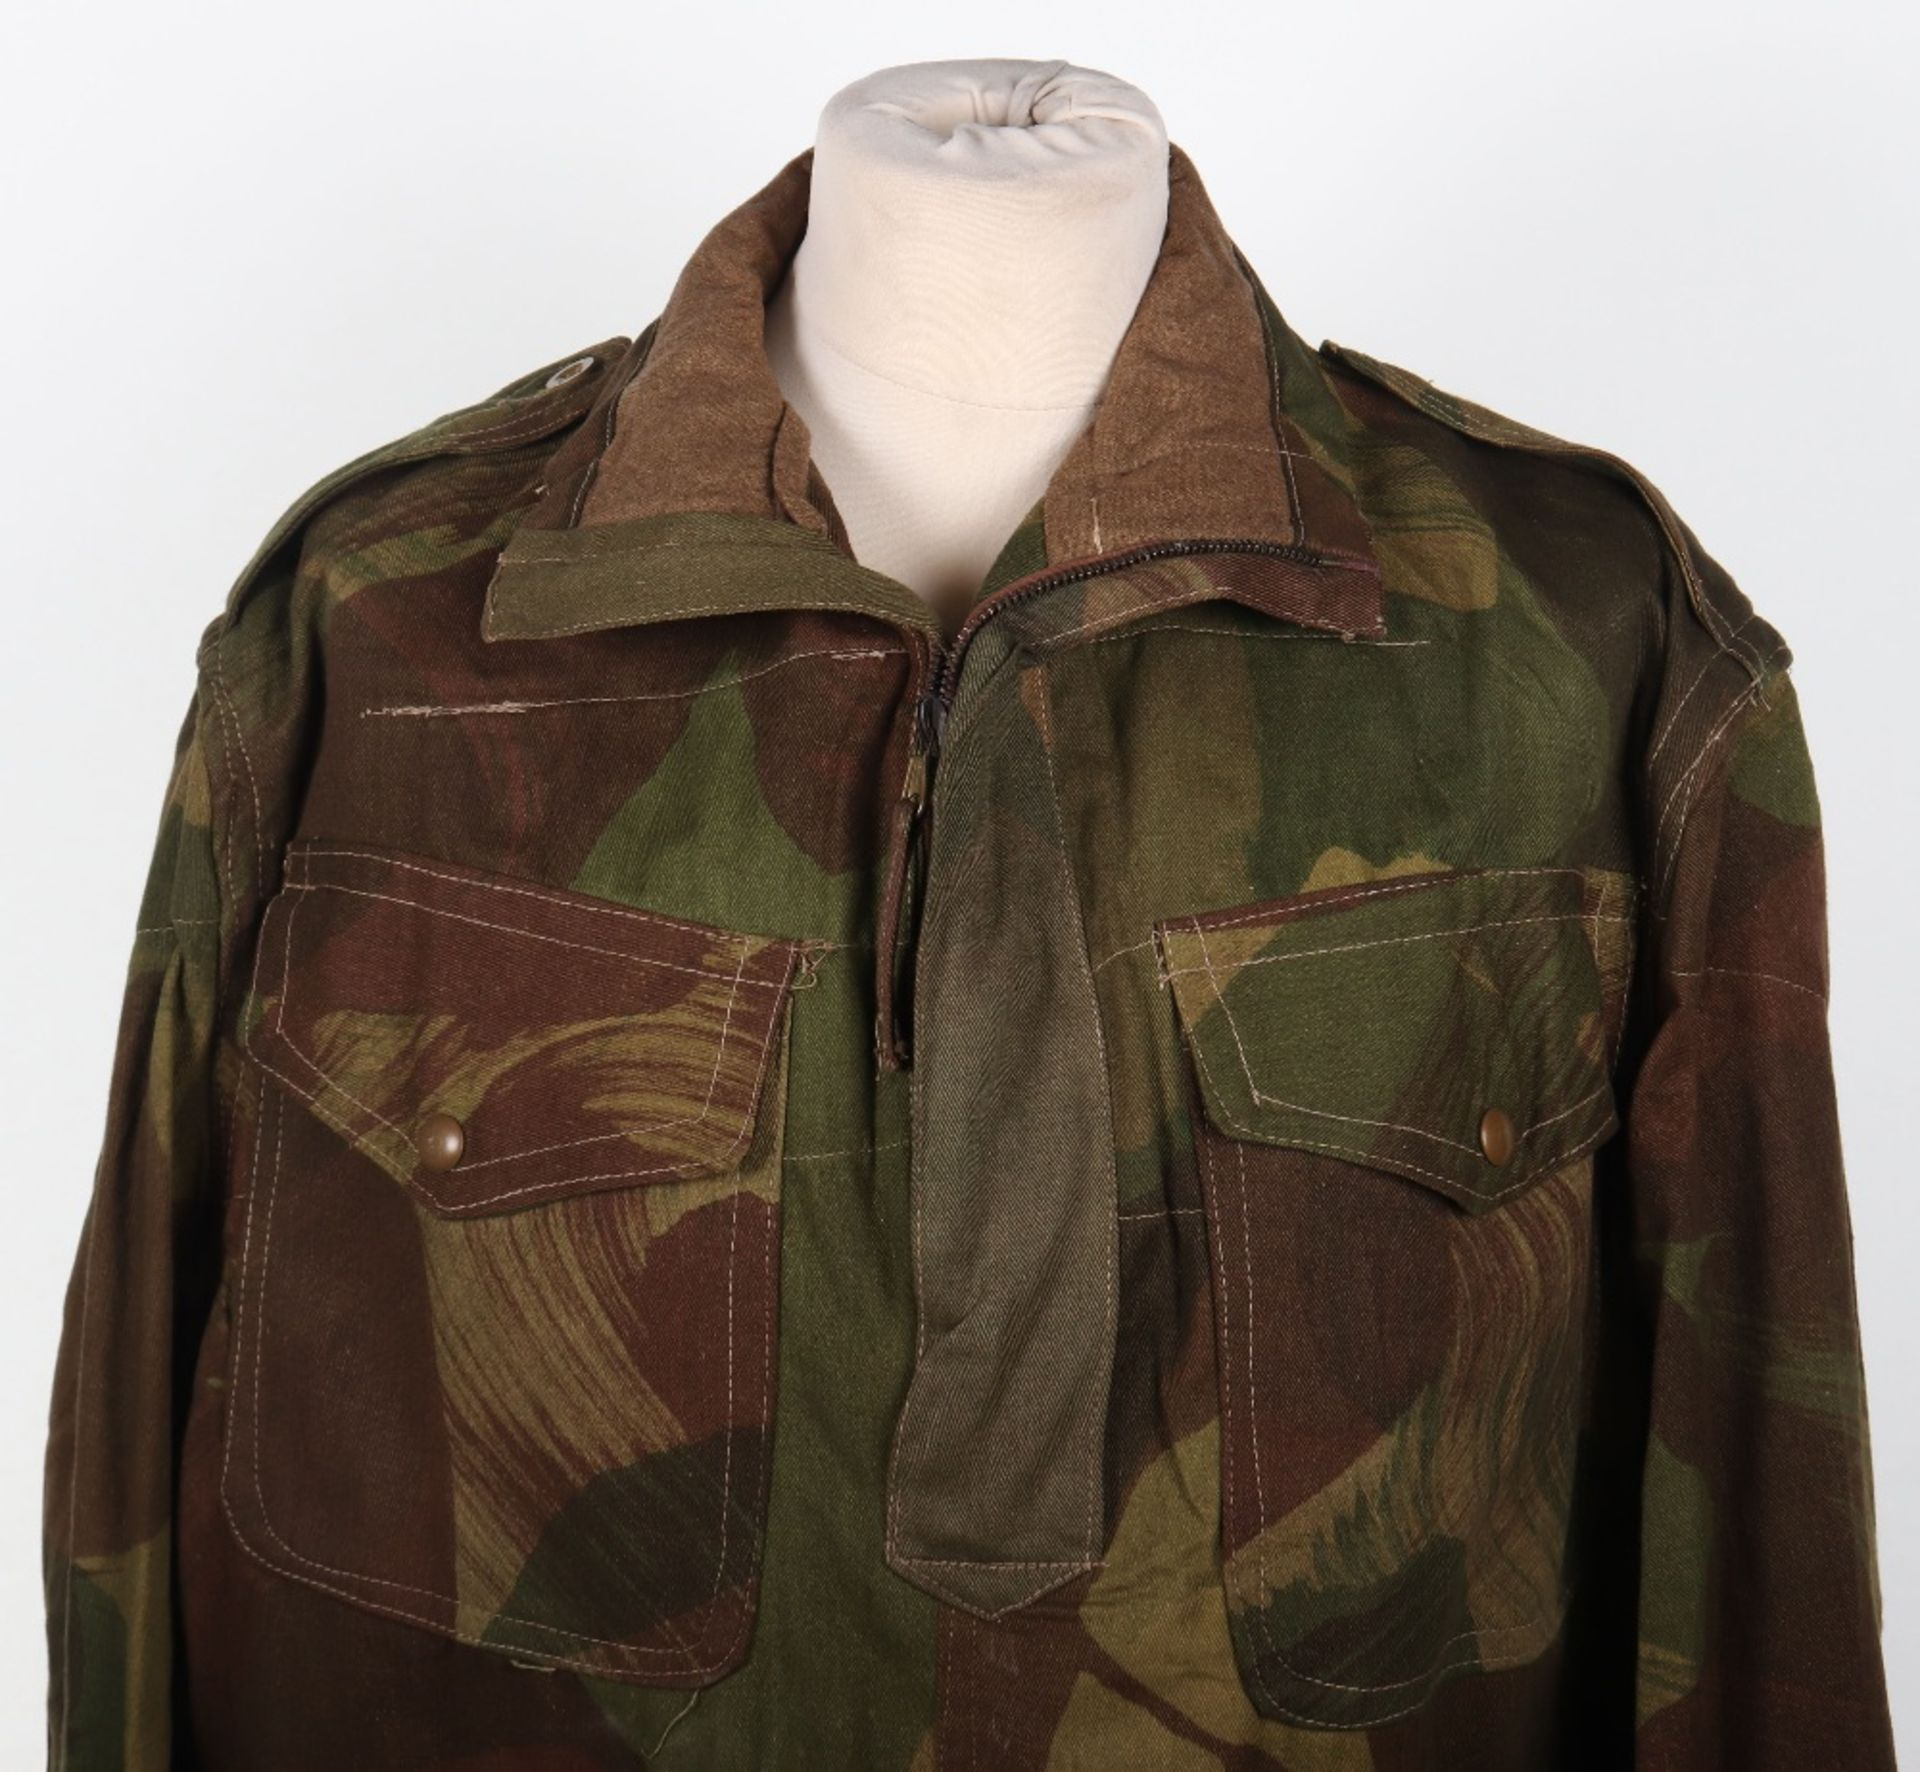 Mint Condition Large Size Airborne Forces Denison Smock - Image 2 of 17